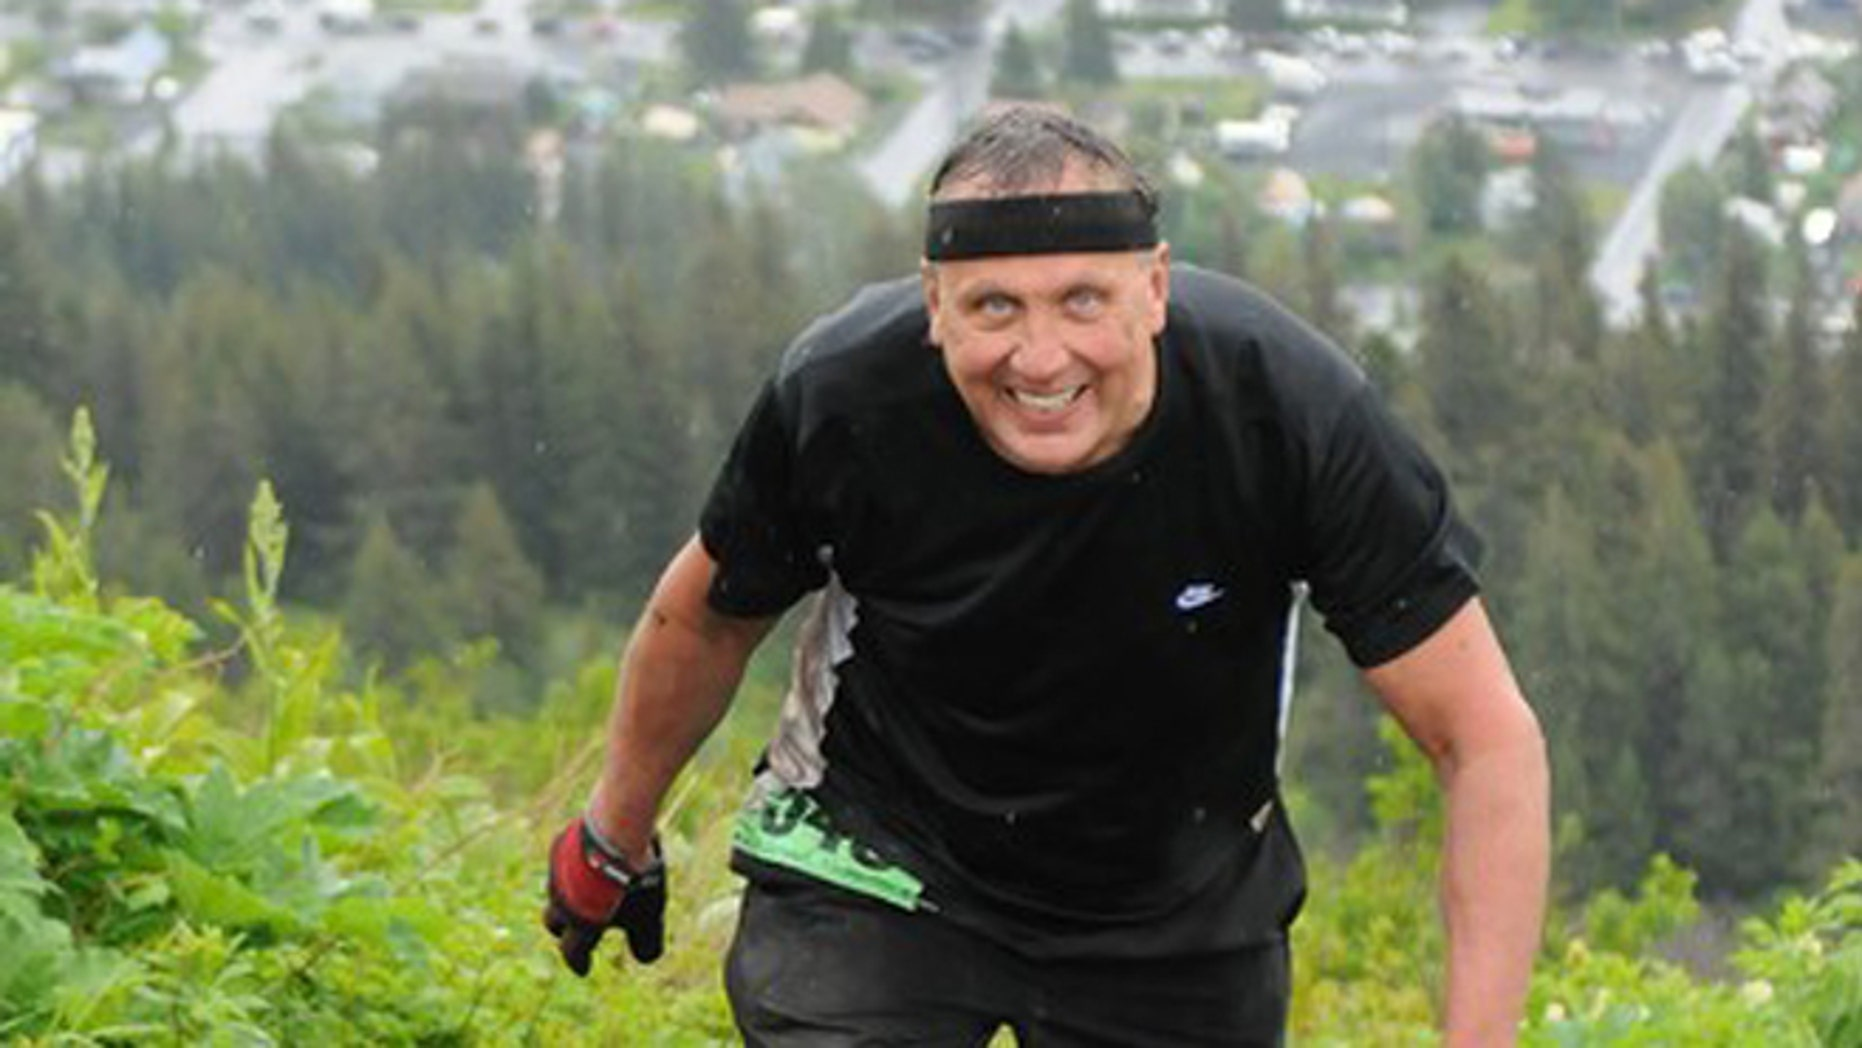 In this photo taken July 4, 2012 and provided by TSS Photography, 65-year-old Michael LeMaitre competes in the Mount Marathon race in Seward, Alaska.